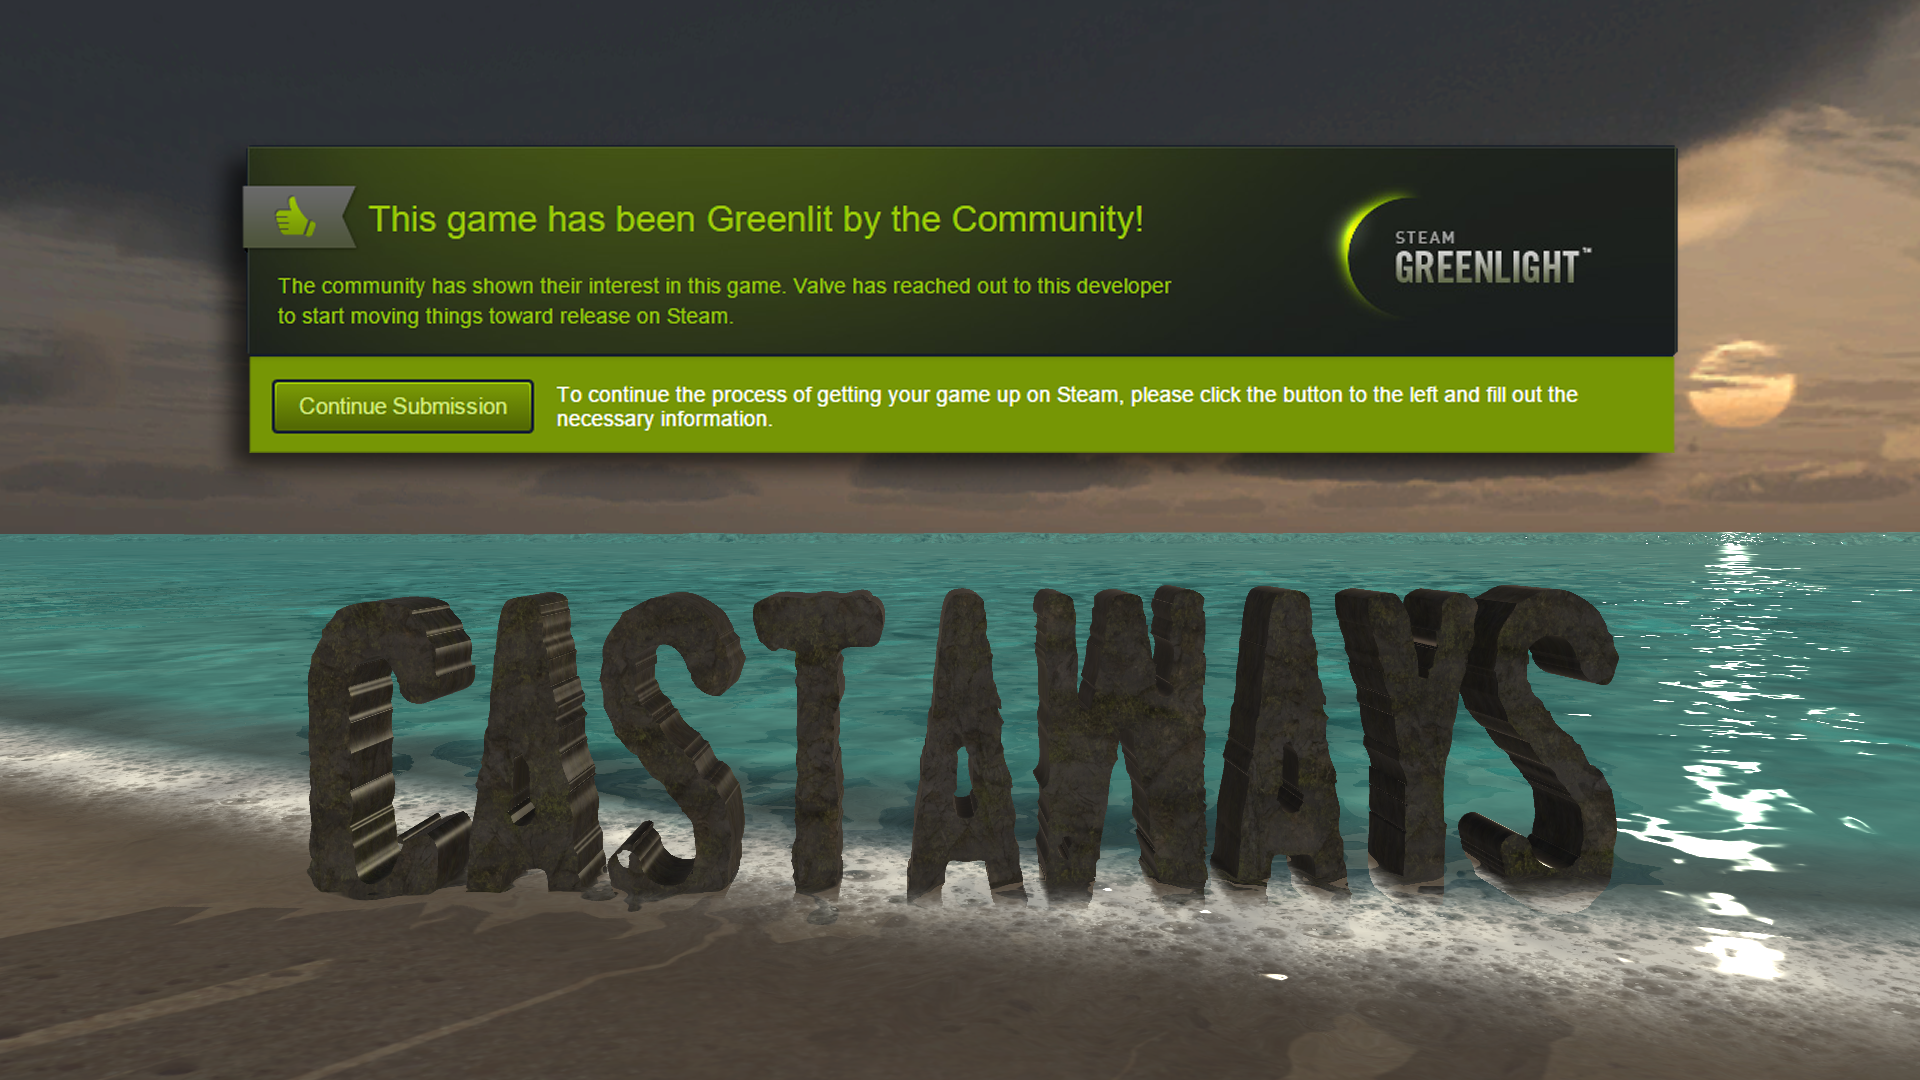 Castaways has been Greenlit!